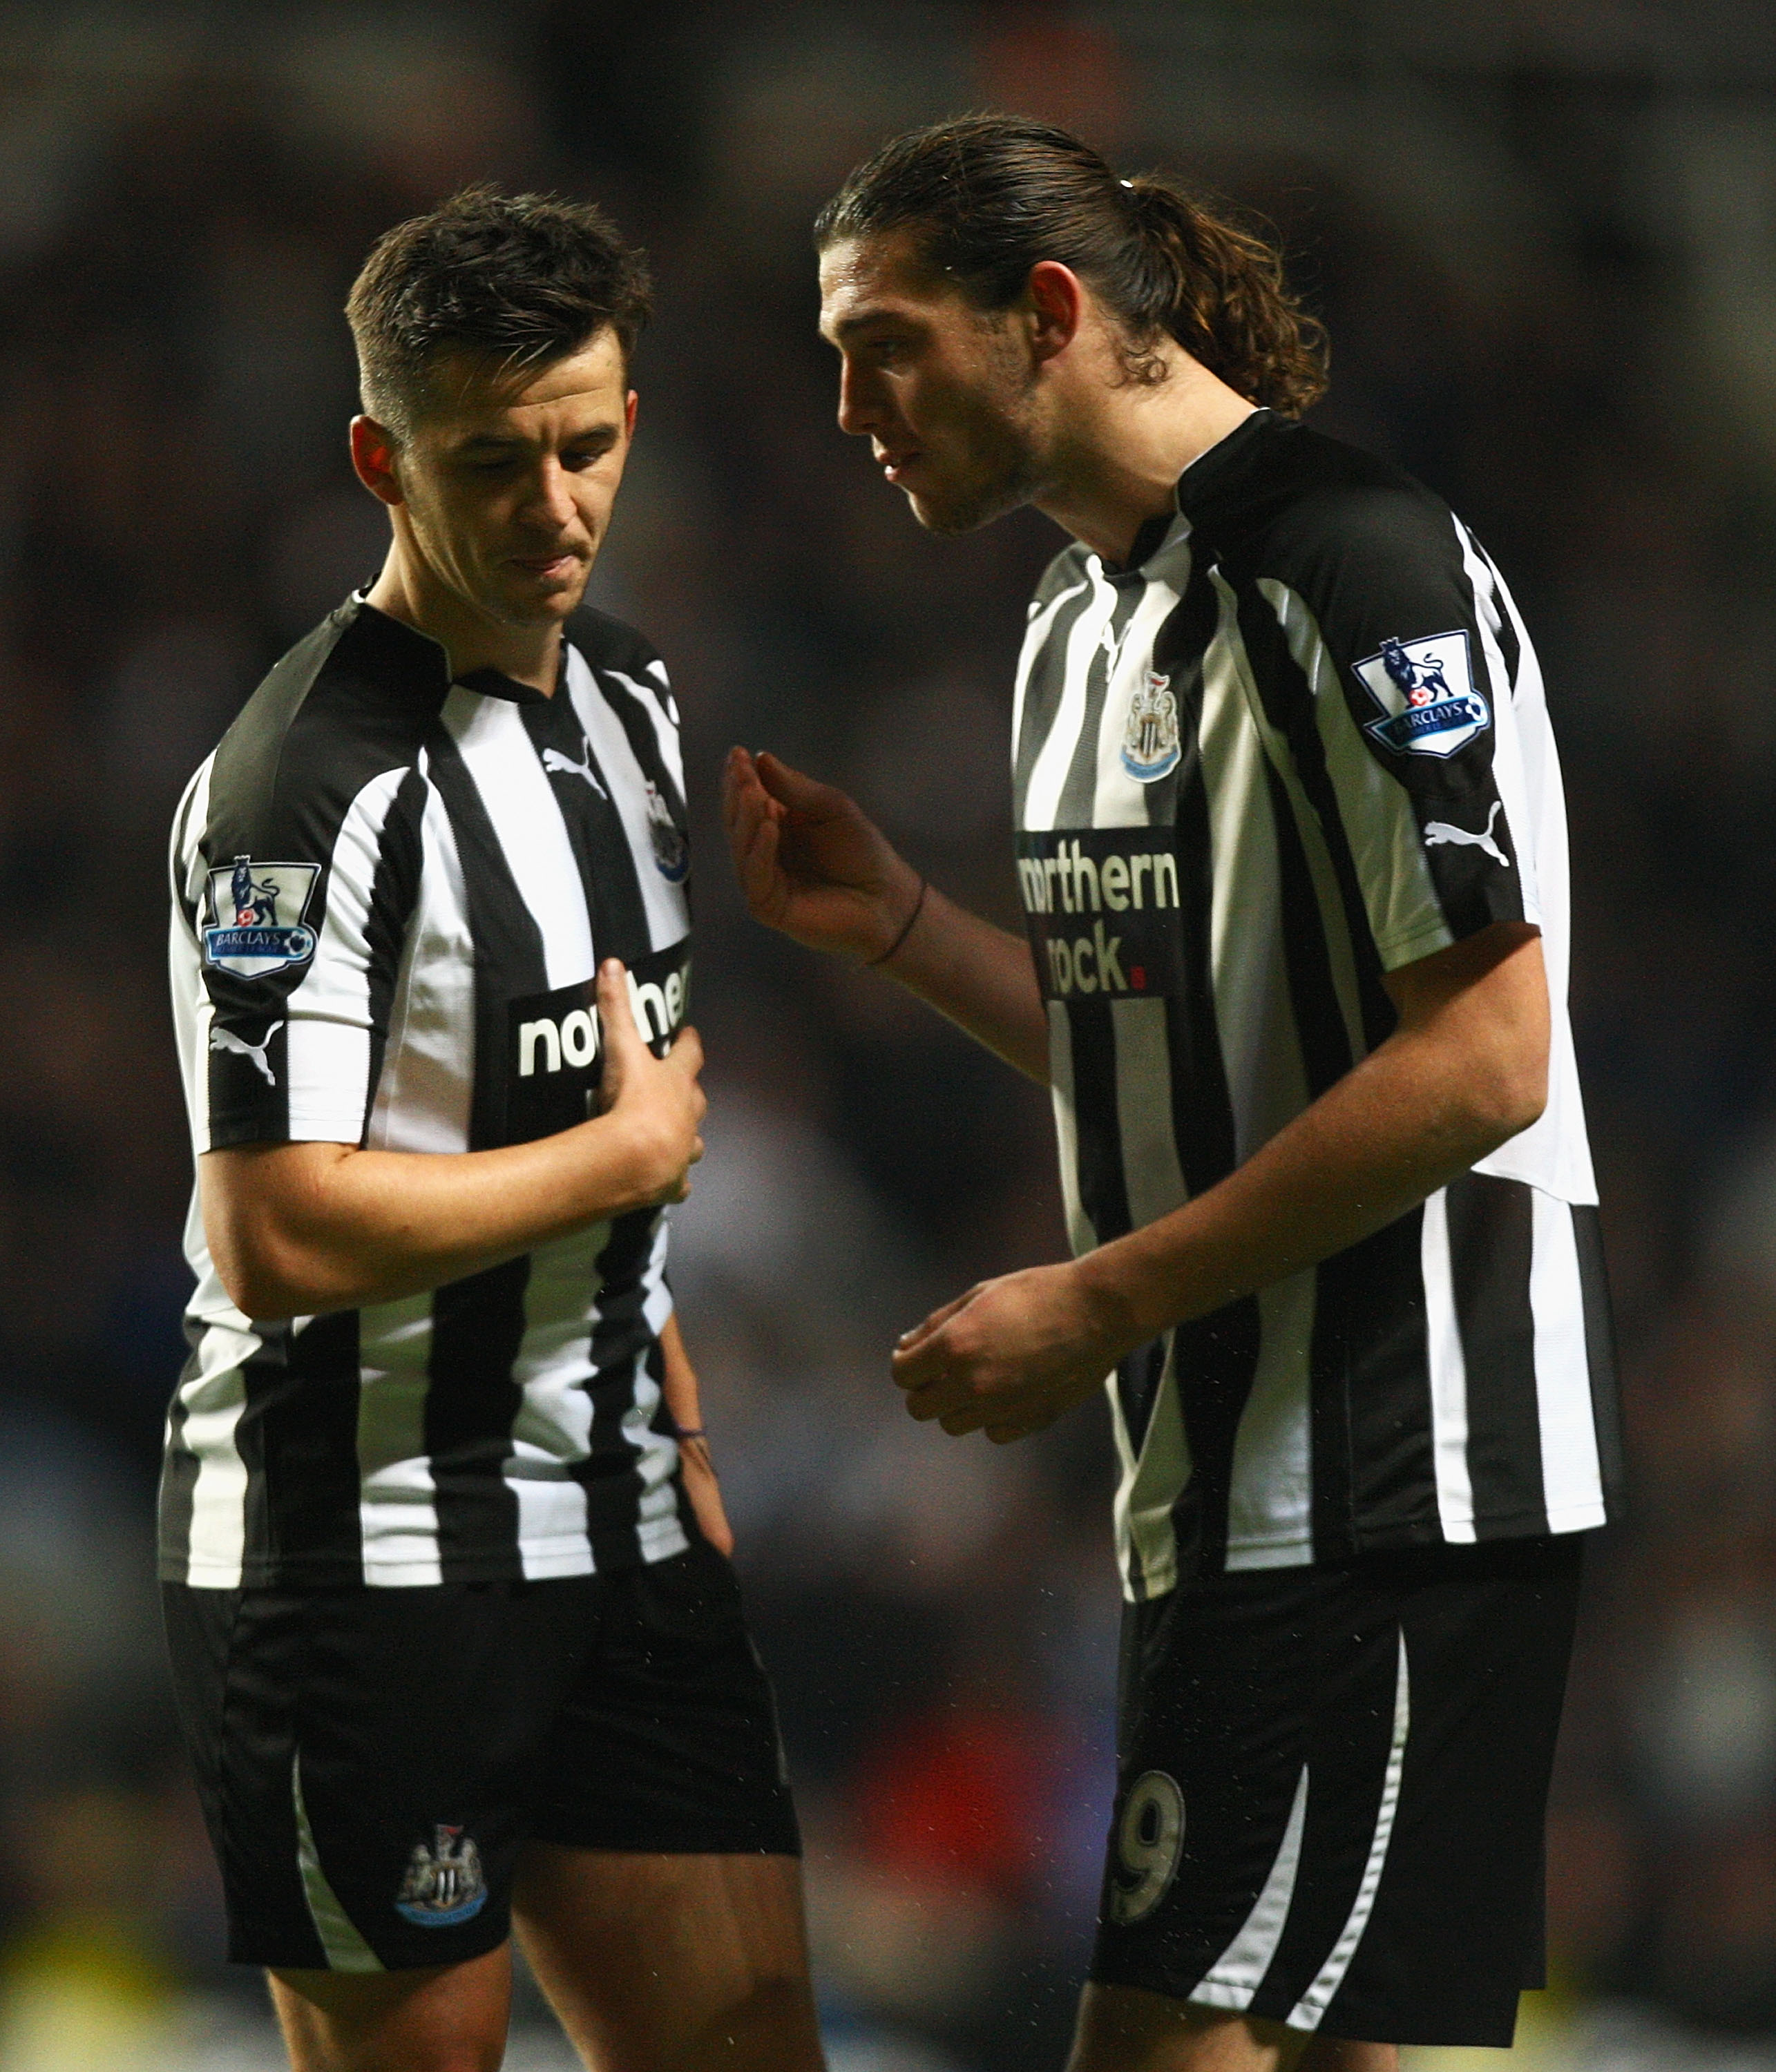 NEWCASTLE UPON TYNE, ENGLAND - NOVEMBER 10:  Joey Barton and Andy Caroll of Newcastle talk during the Barclays Premier League match between Newcastle United and Blackburn Rovers at St James' Park on November 10, 2010 in Newcastle upon Tyne, England.  (Pho